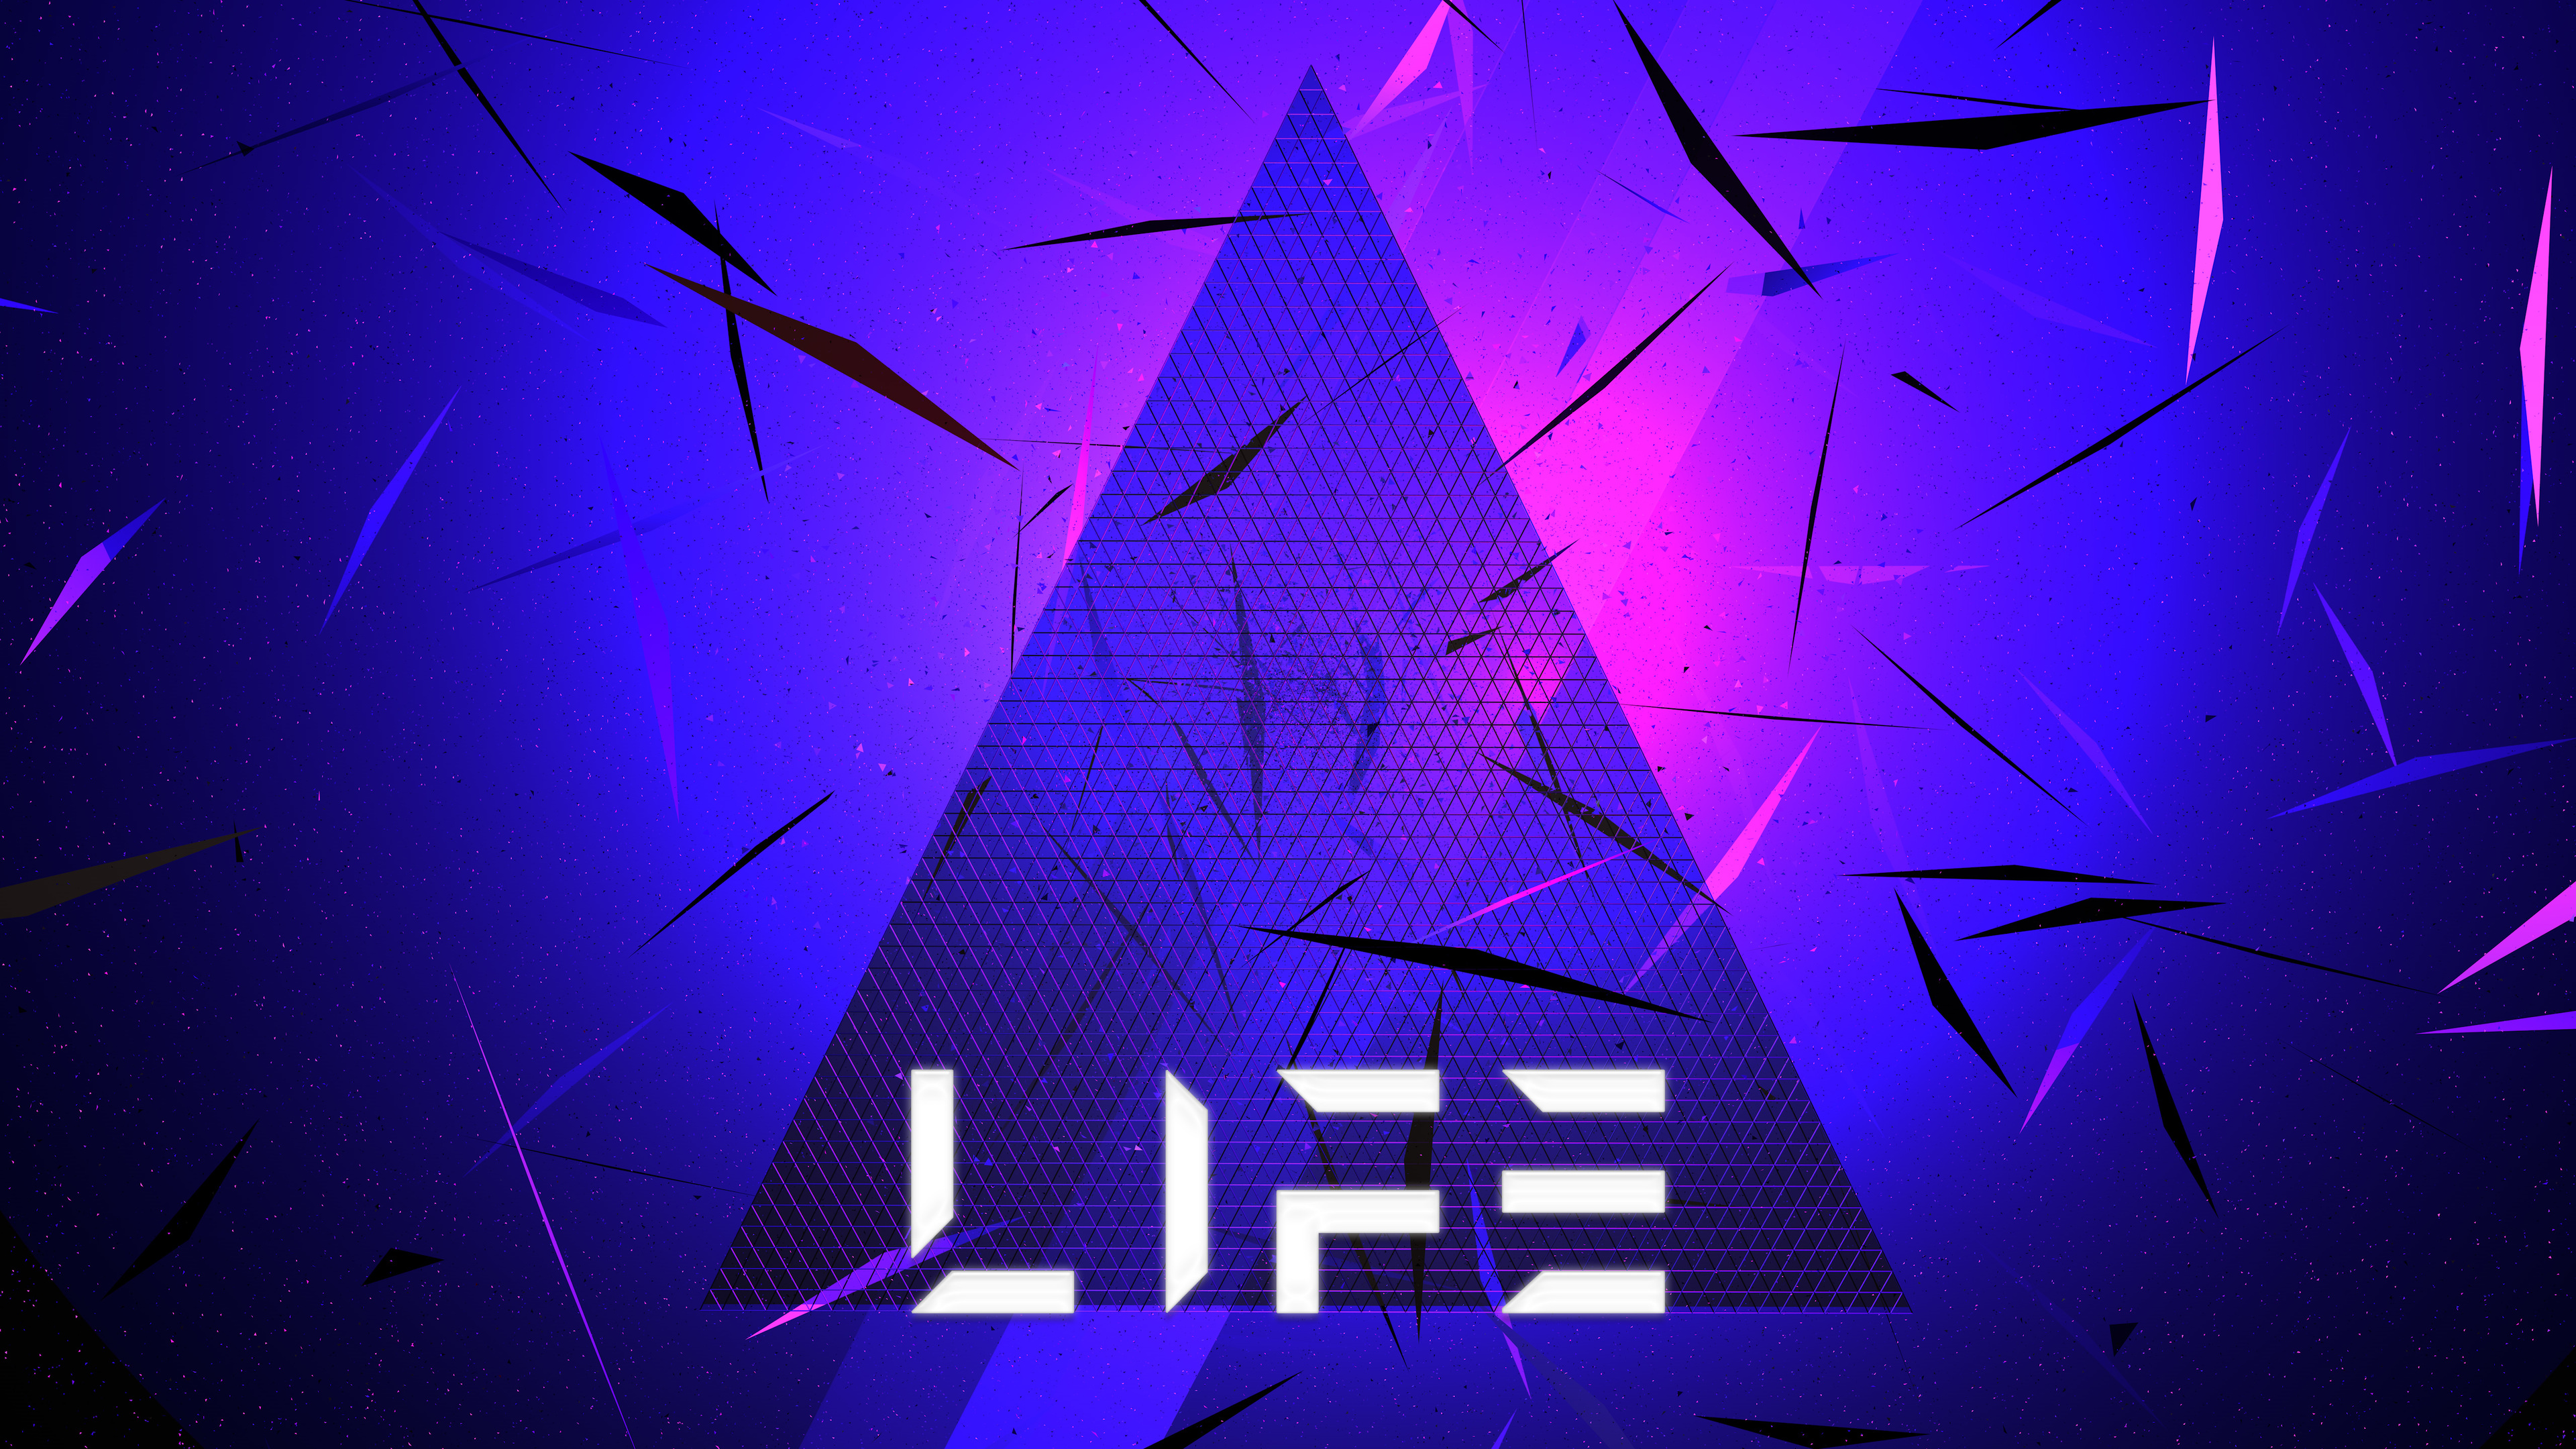 triangle abstract life typography 5k 1539371003 - Triangle Abstract Life Typography 5k - triangle wallpapers, life wallpapers, hd-wallpapers, digital art wallpapers, artwork wallpapers, artist wallpapers, abstract wallpapers, 5k wallpapers, 4k-wallpapers